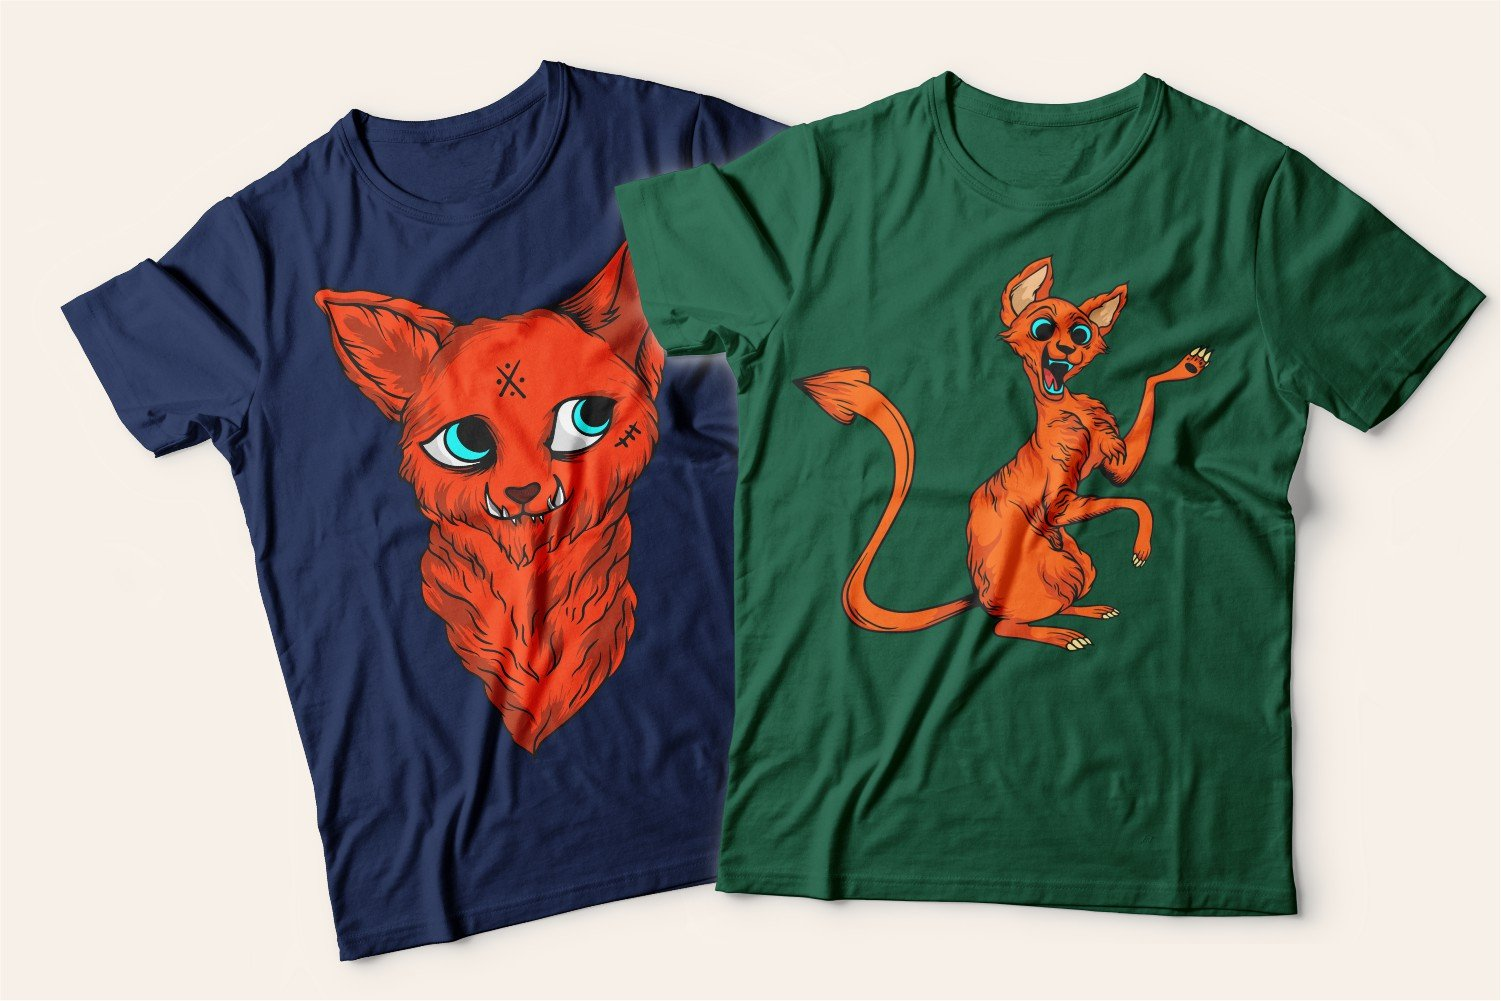 Two T-shirts with cats: one blue with a playful apologetic kitty, the other green with a skinny ginger cat.